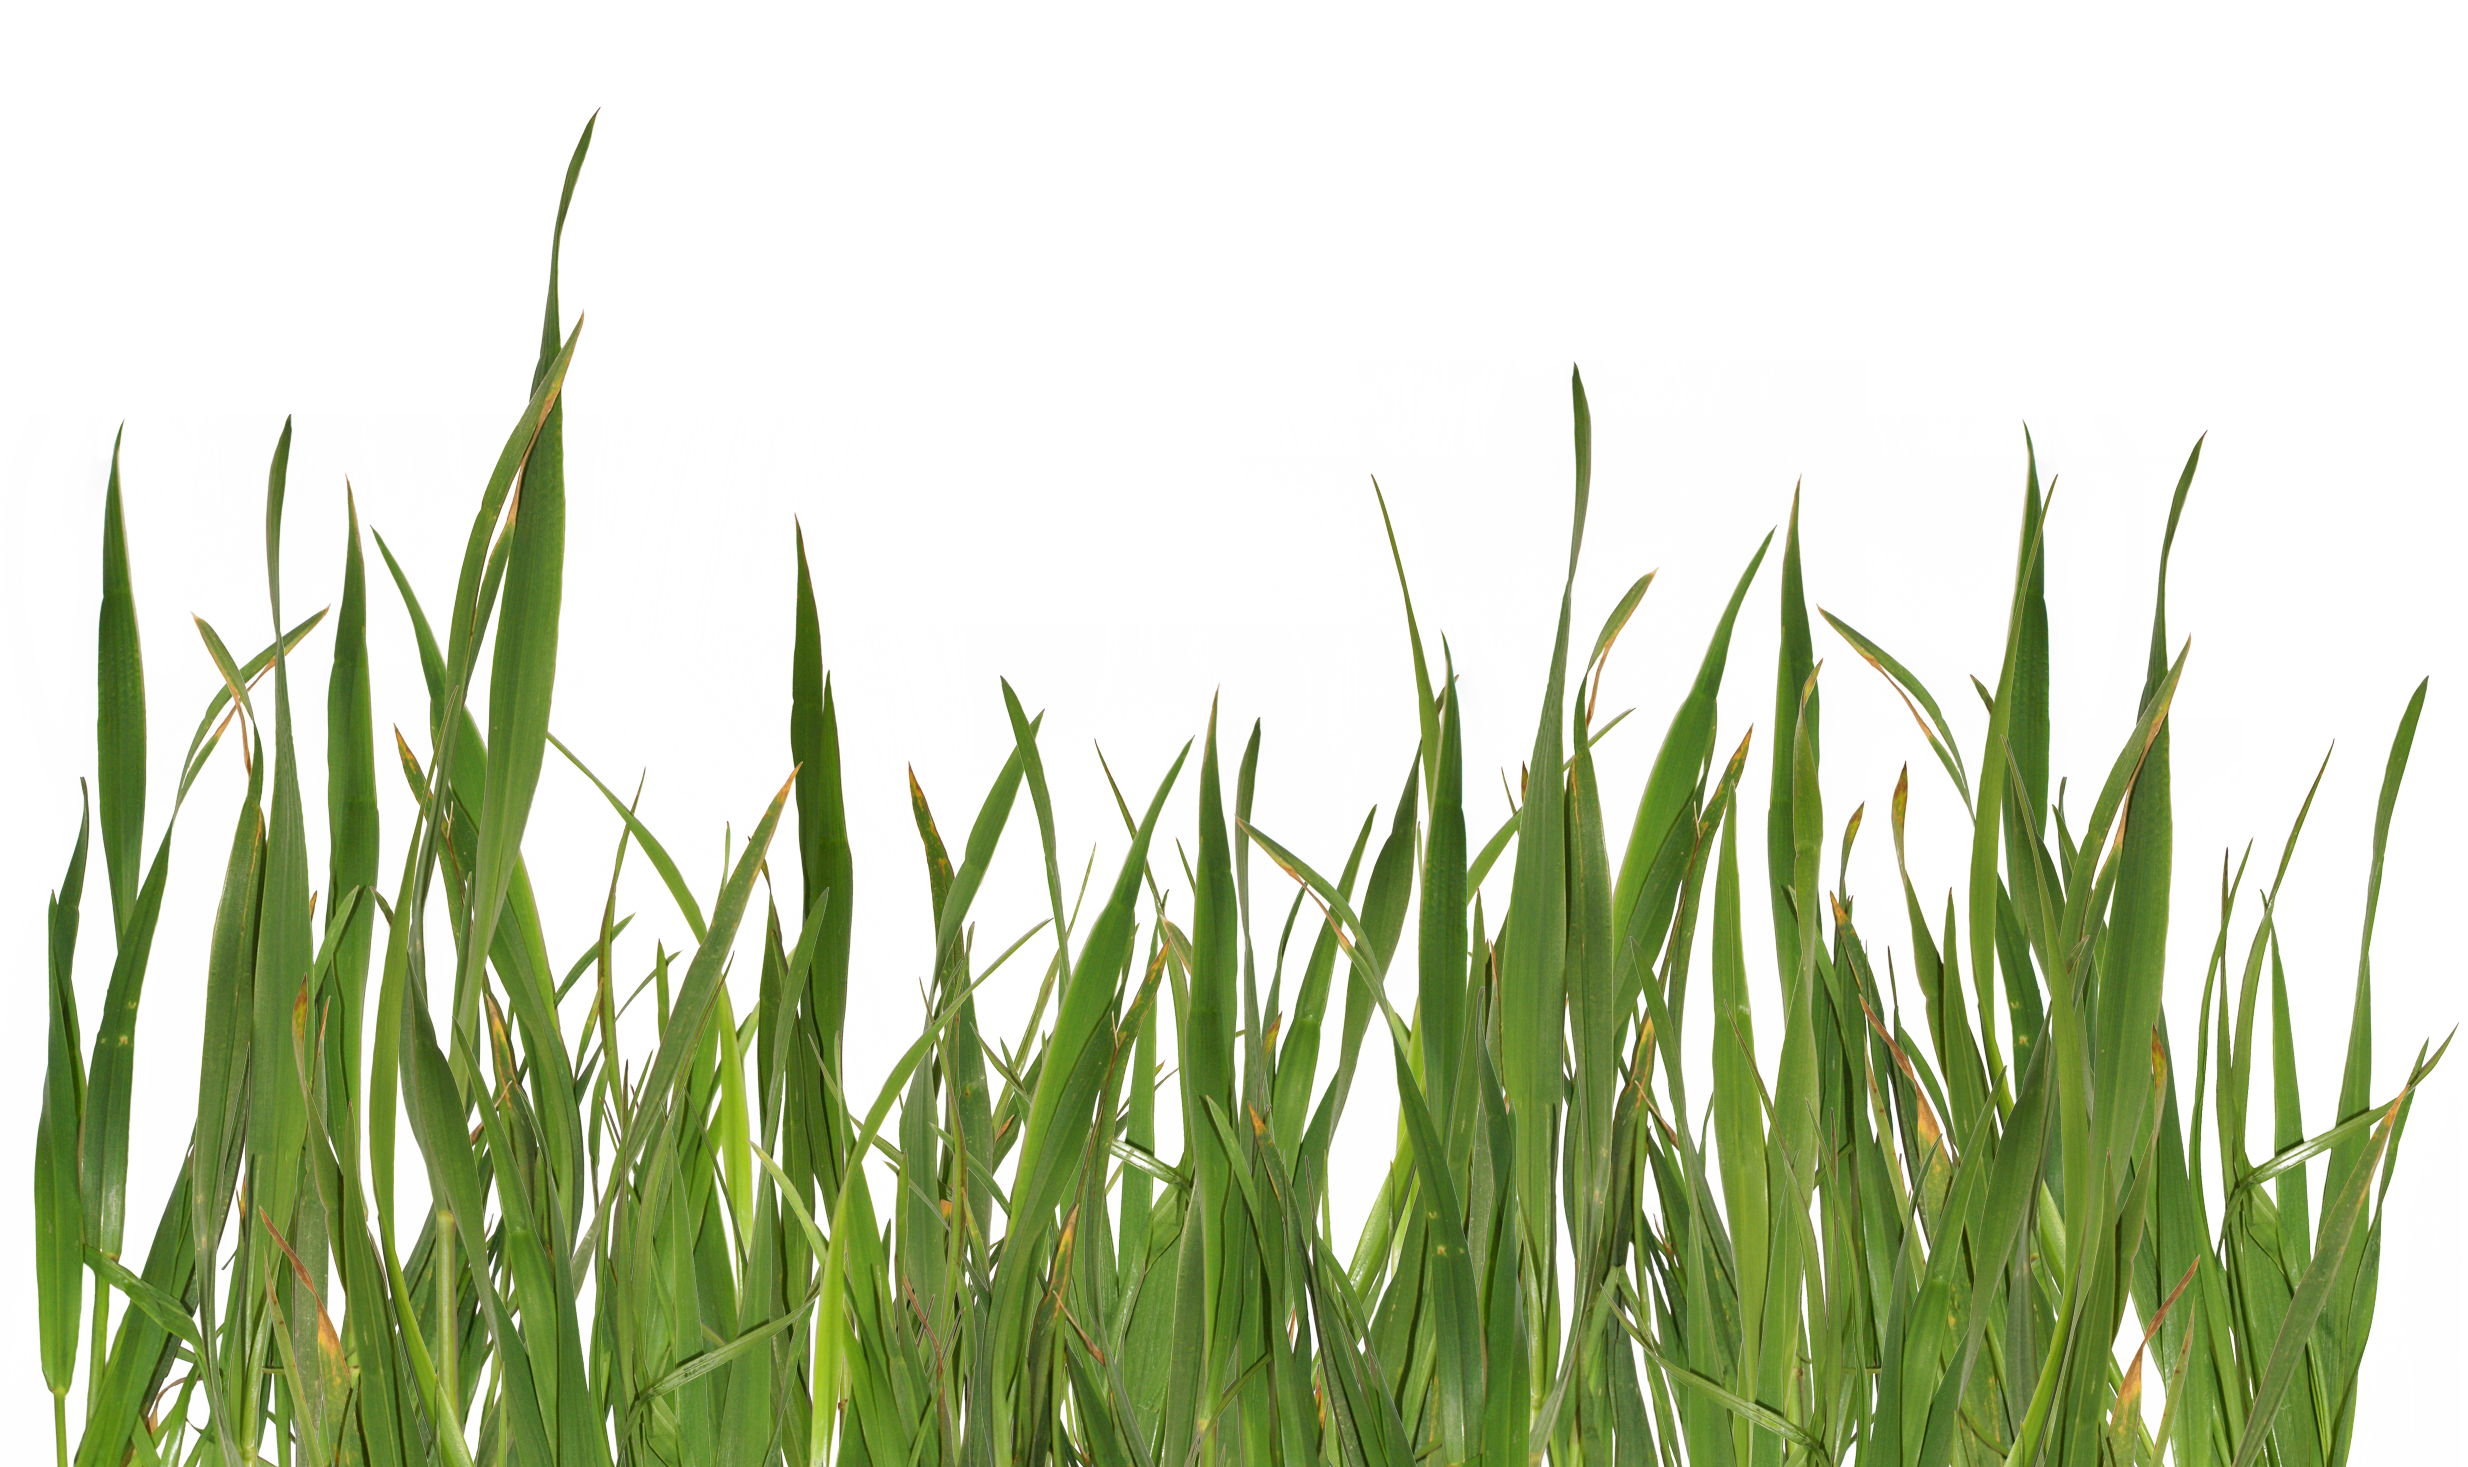 Grass blade texture png. Flower meaning submission pygmalion